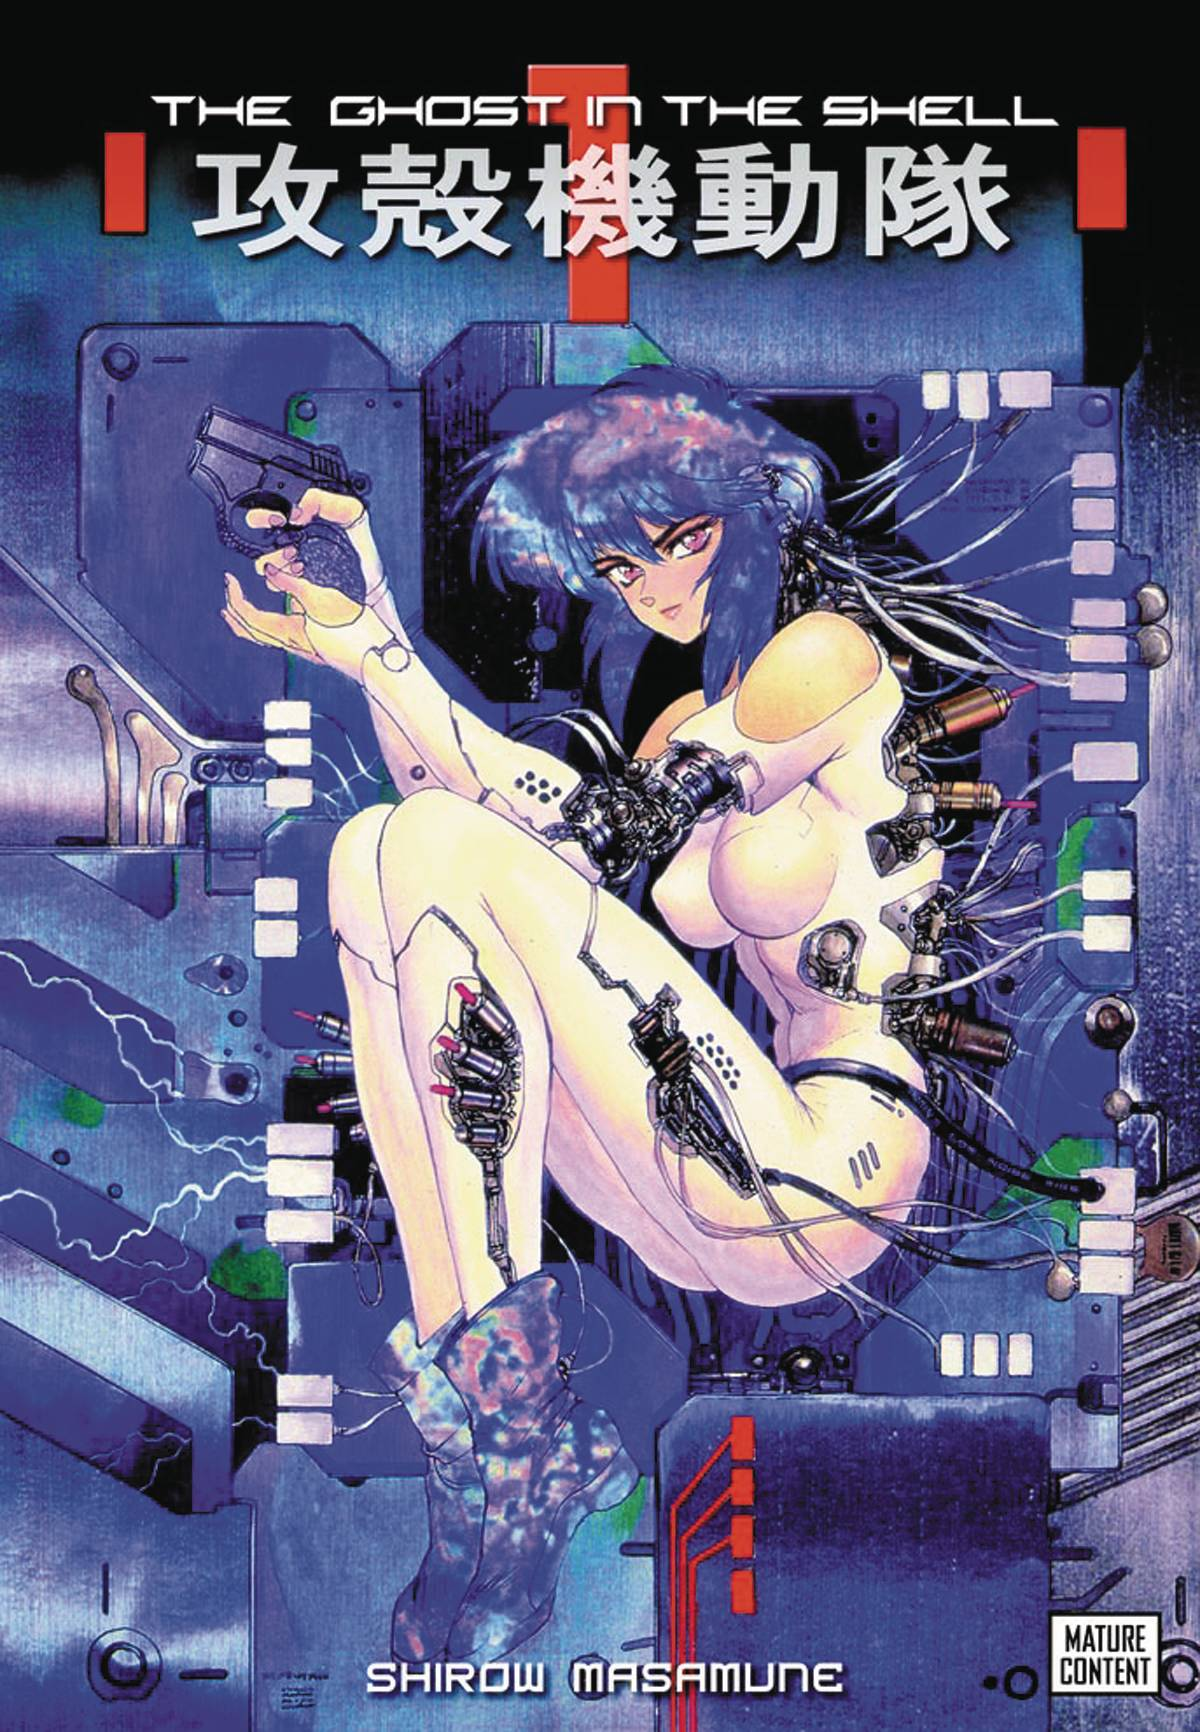 GHOST IN THE SHELL 1.5 DLX RTL HC ED